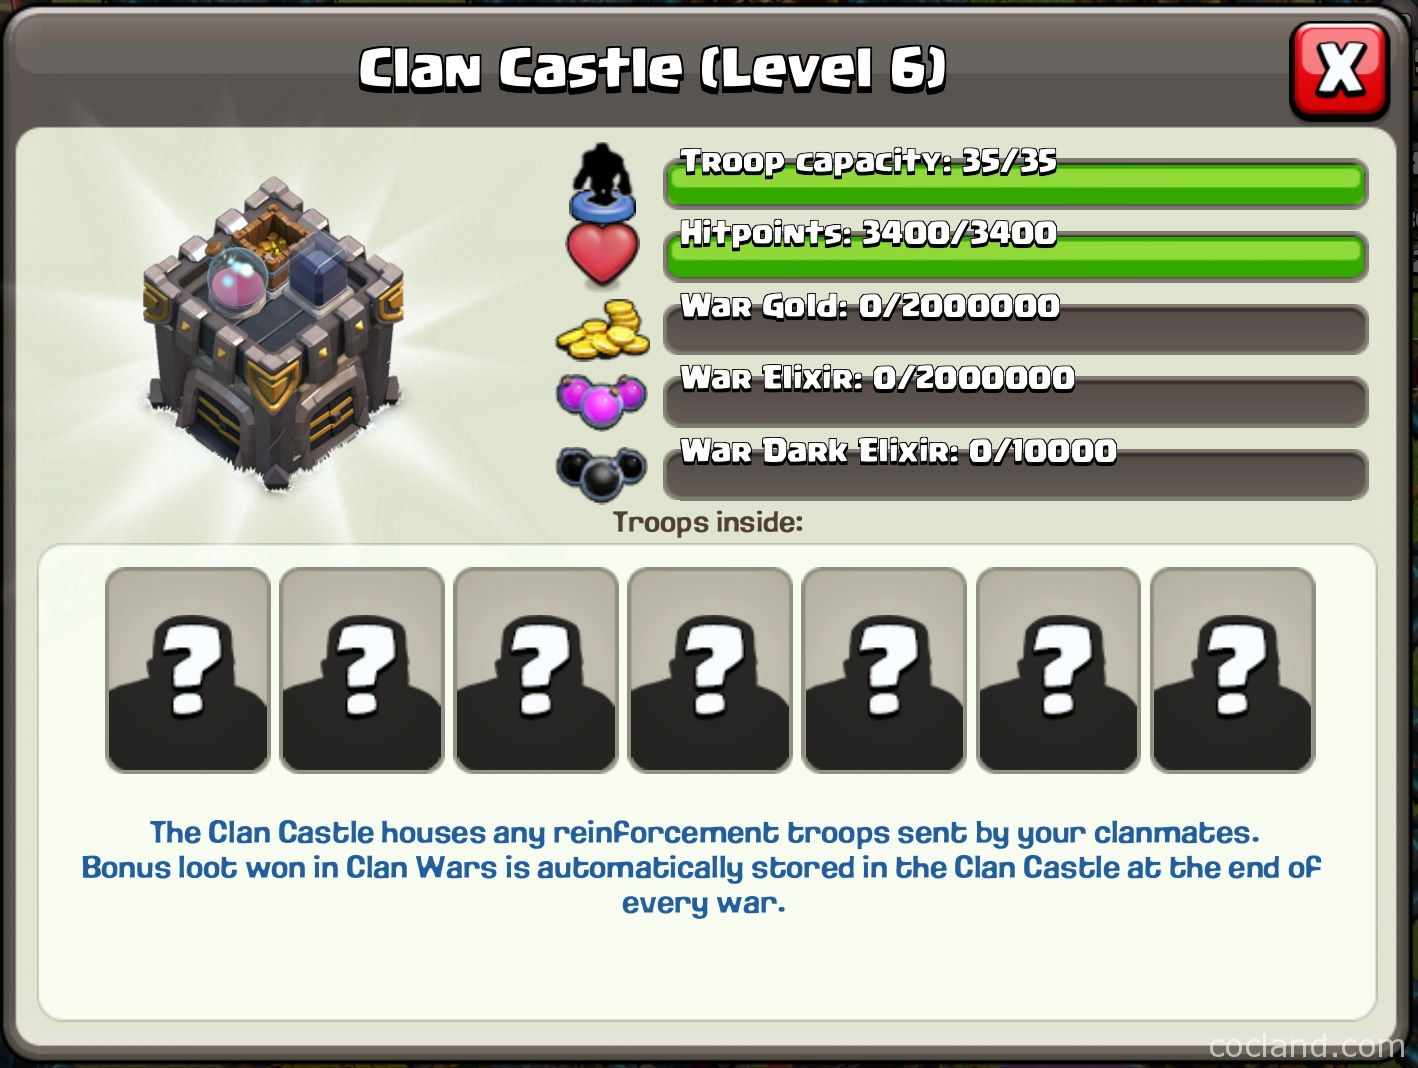 Best Troops for Clan Castle in War